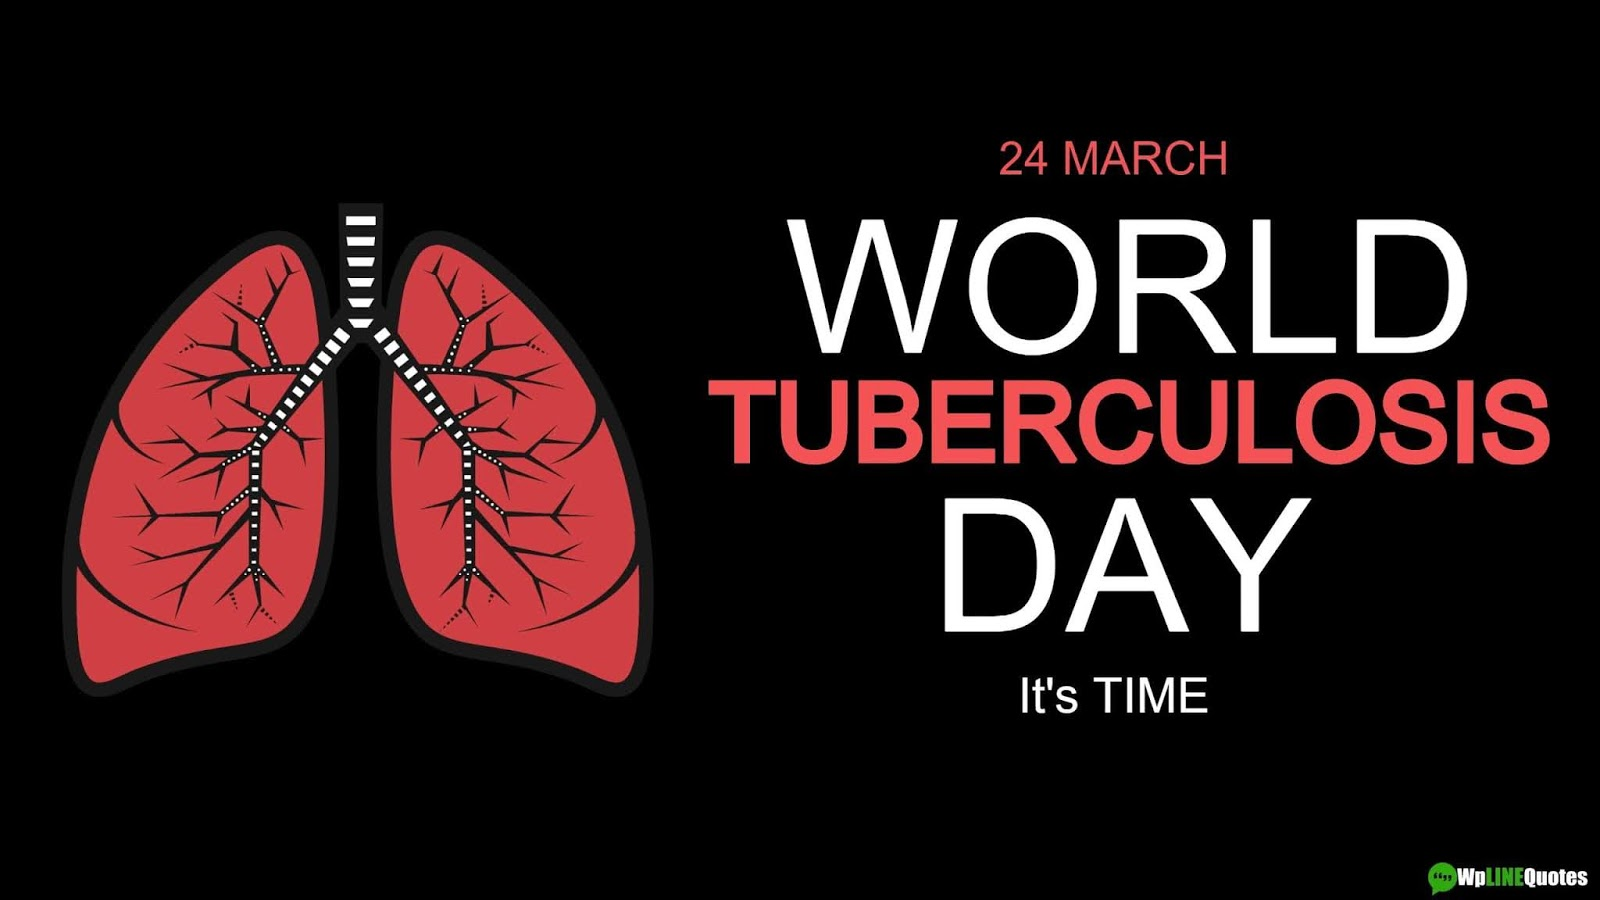 World Tuberculosis (TB) Day Quotes, Slogans, Theme, Activities, Poster, Images For Instagram & Facebook